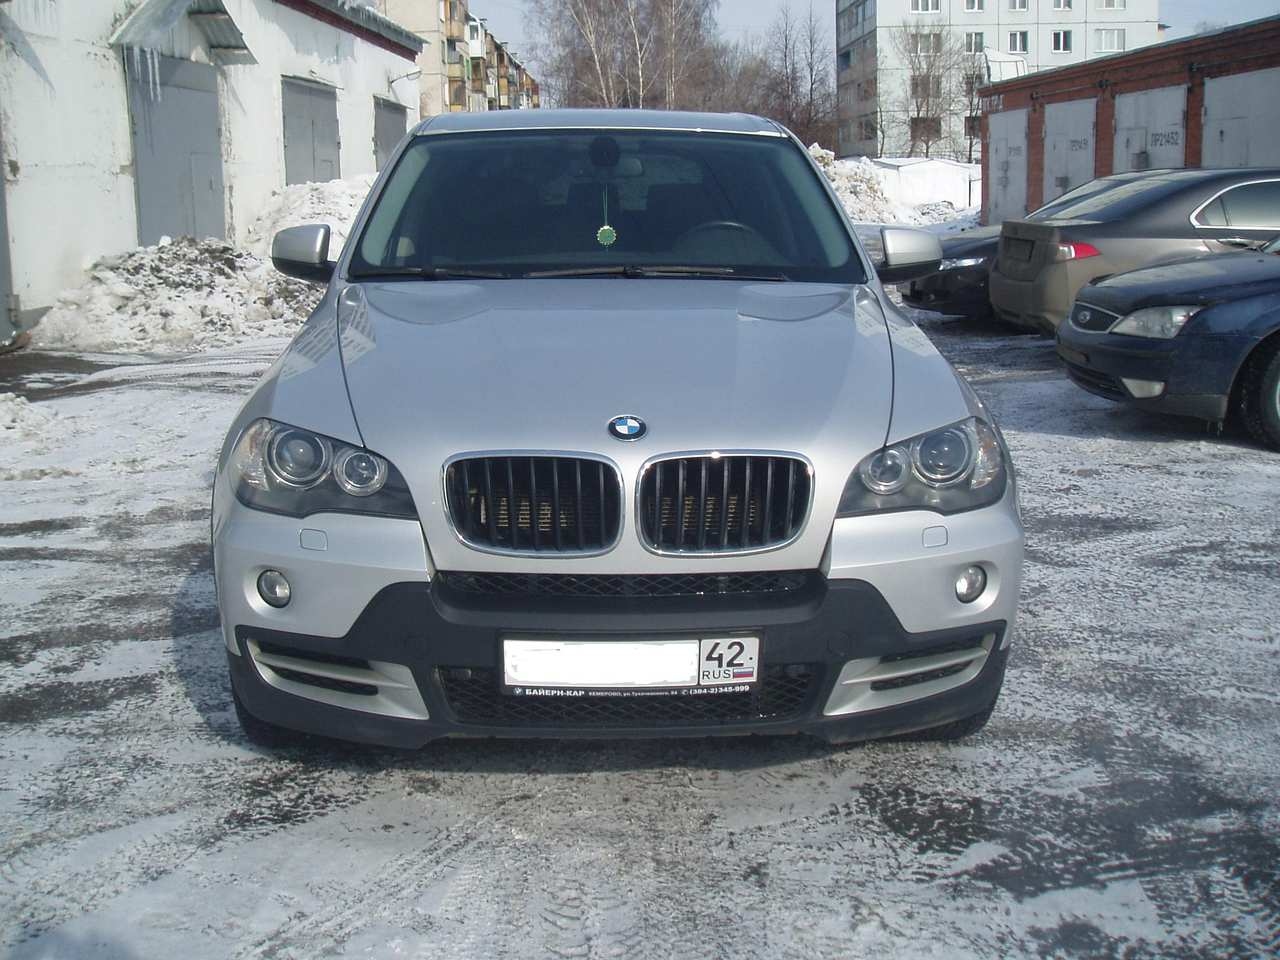 2008 bmw x5 photos 3 0 diesel automatic for sale. Black Bedroom Furniture Sets. Home Design Ideas